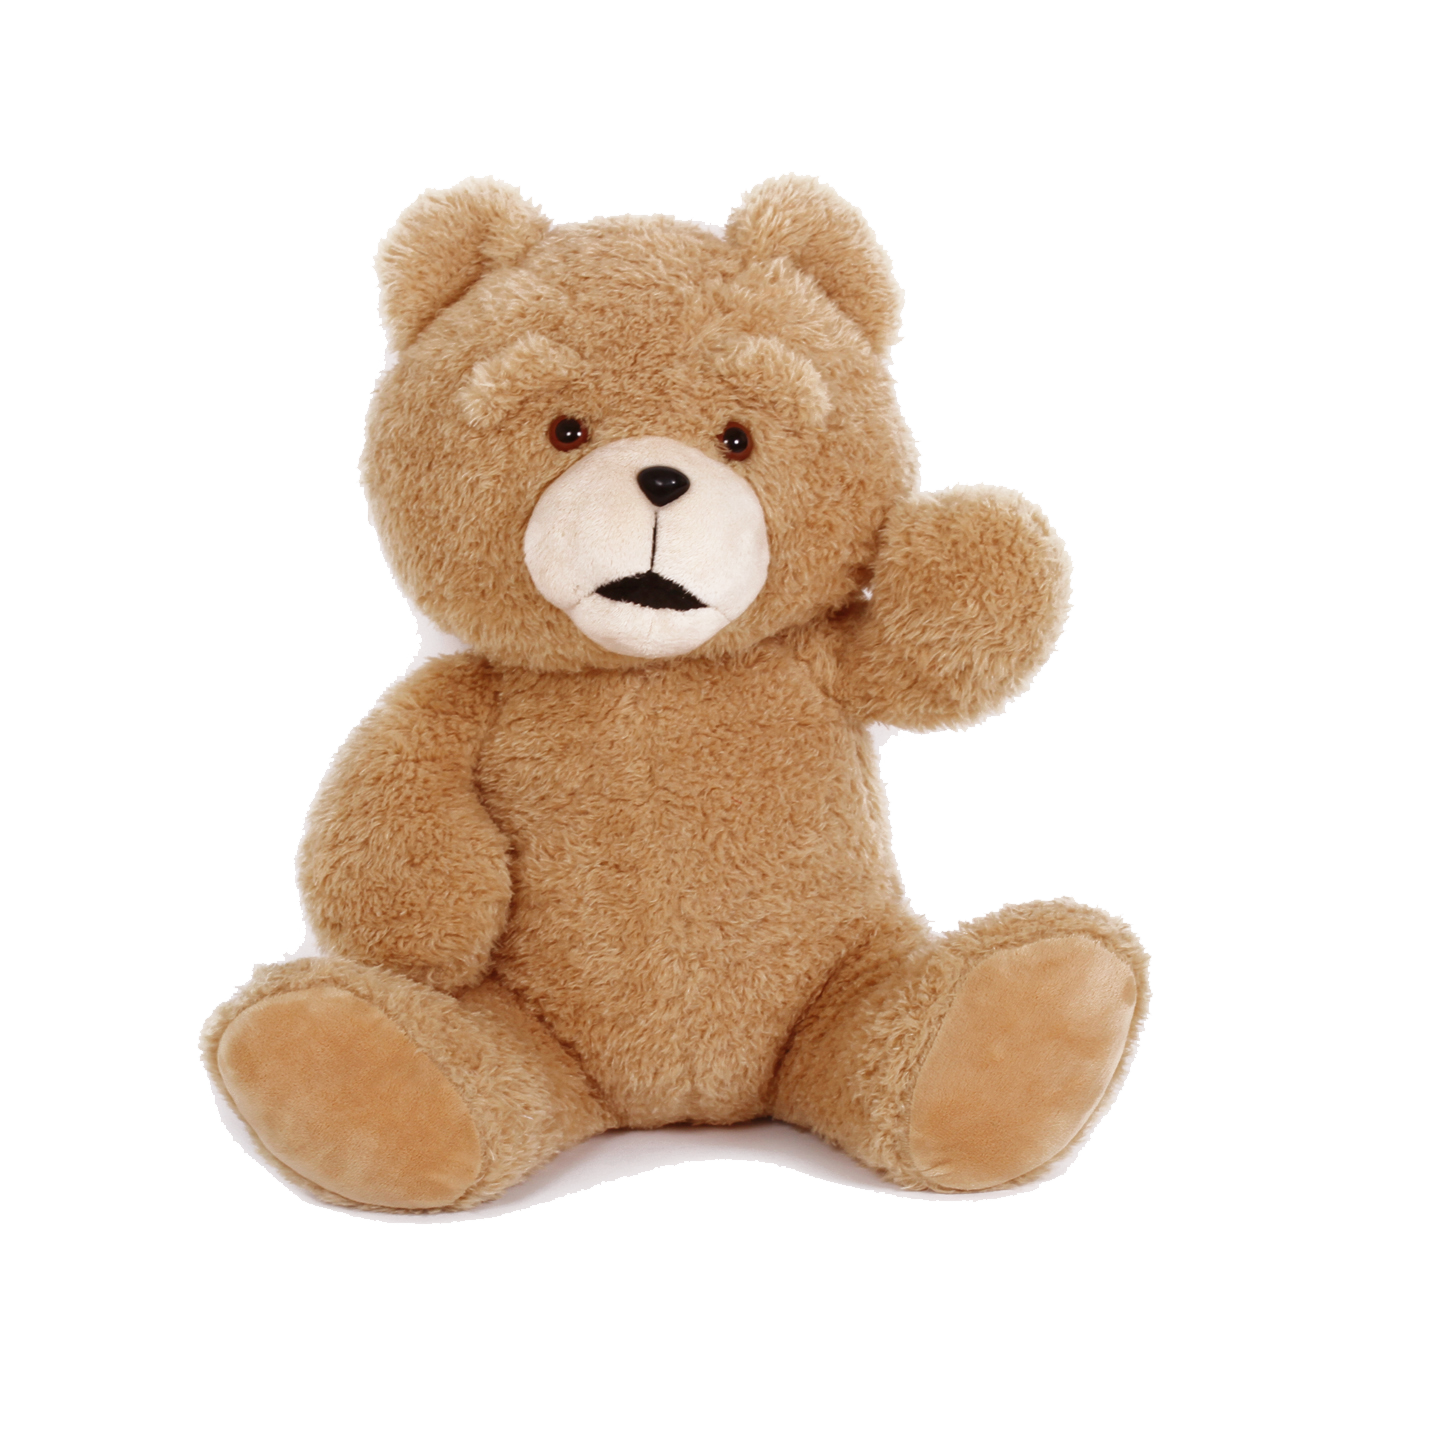 Teddy Bear PNG Images HD.